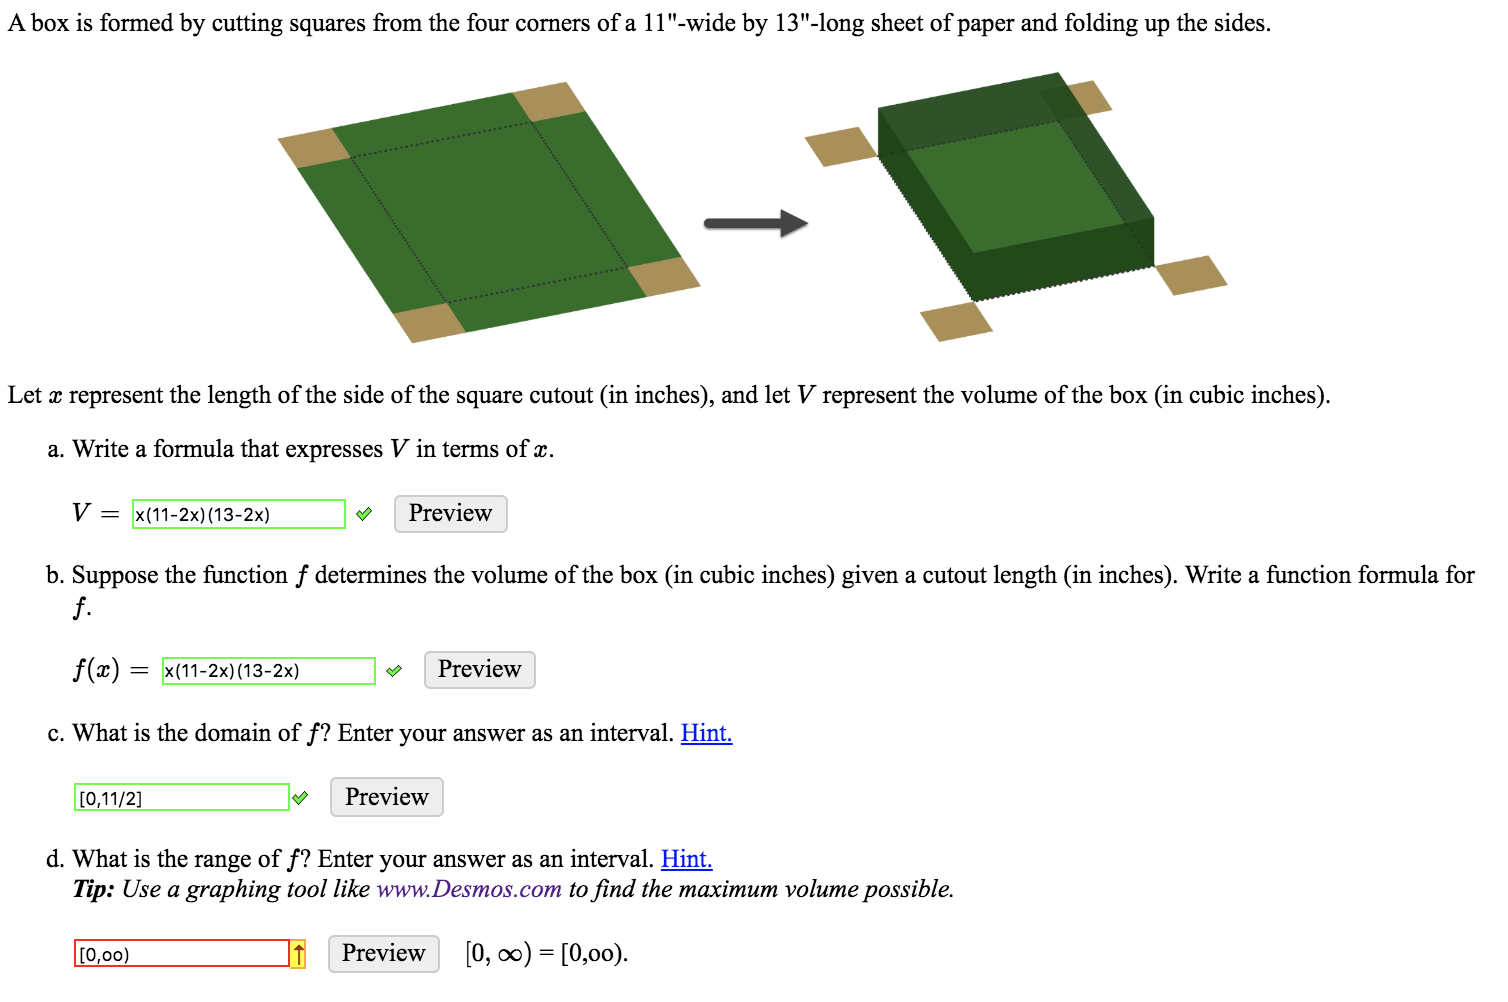 """A box is formed by cutting squares from the four corners of a 11""""-wide by 13""""-long sheet of paper and folding up the sides. Let x represent the length of the side of the square cutout (in inches), and let V represent the volume of the box (in cubic inches). a. Write a formula that expresses V in terms of x. V = x(11-2x) (13-2x) Preview b. Suppose the function f determines the volume of the box (in cubic inches) given a cutout length (in inches). Write a function formula for f. f(x) Preview x(11-2x) (13-2x) c. What is the domain of f? Enter your answer as an interval. Hint. Preview [0,11/2] d. What is the range of f? Enter your answer as an interval. Hint Tip: Use a graphing tool like www.Desmos.com to find the maximum volume possible. [0, oo) [0,00) Preview [0,00)"""